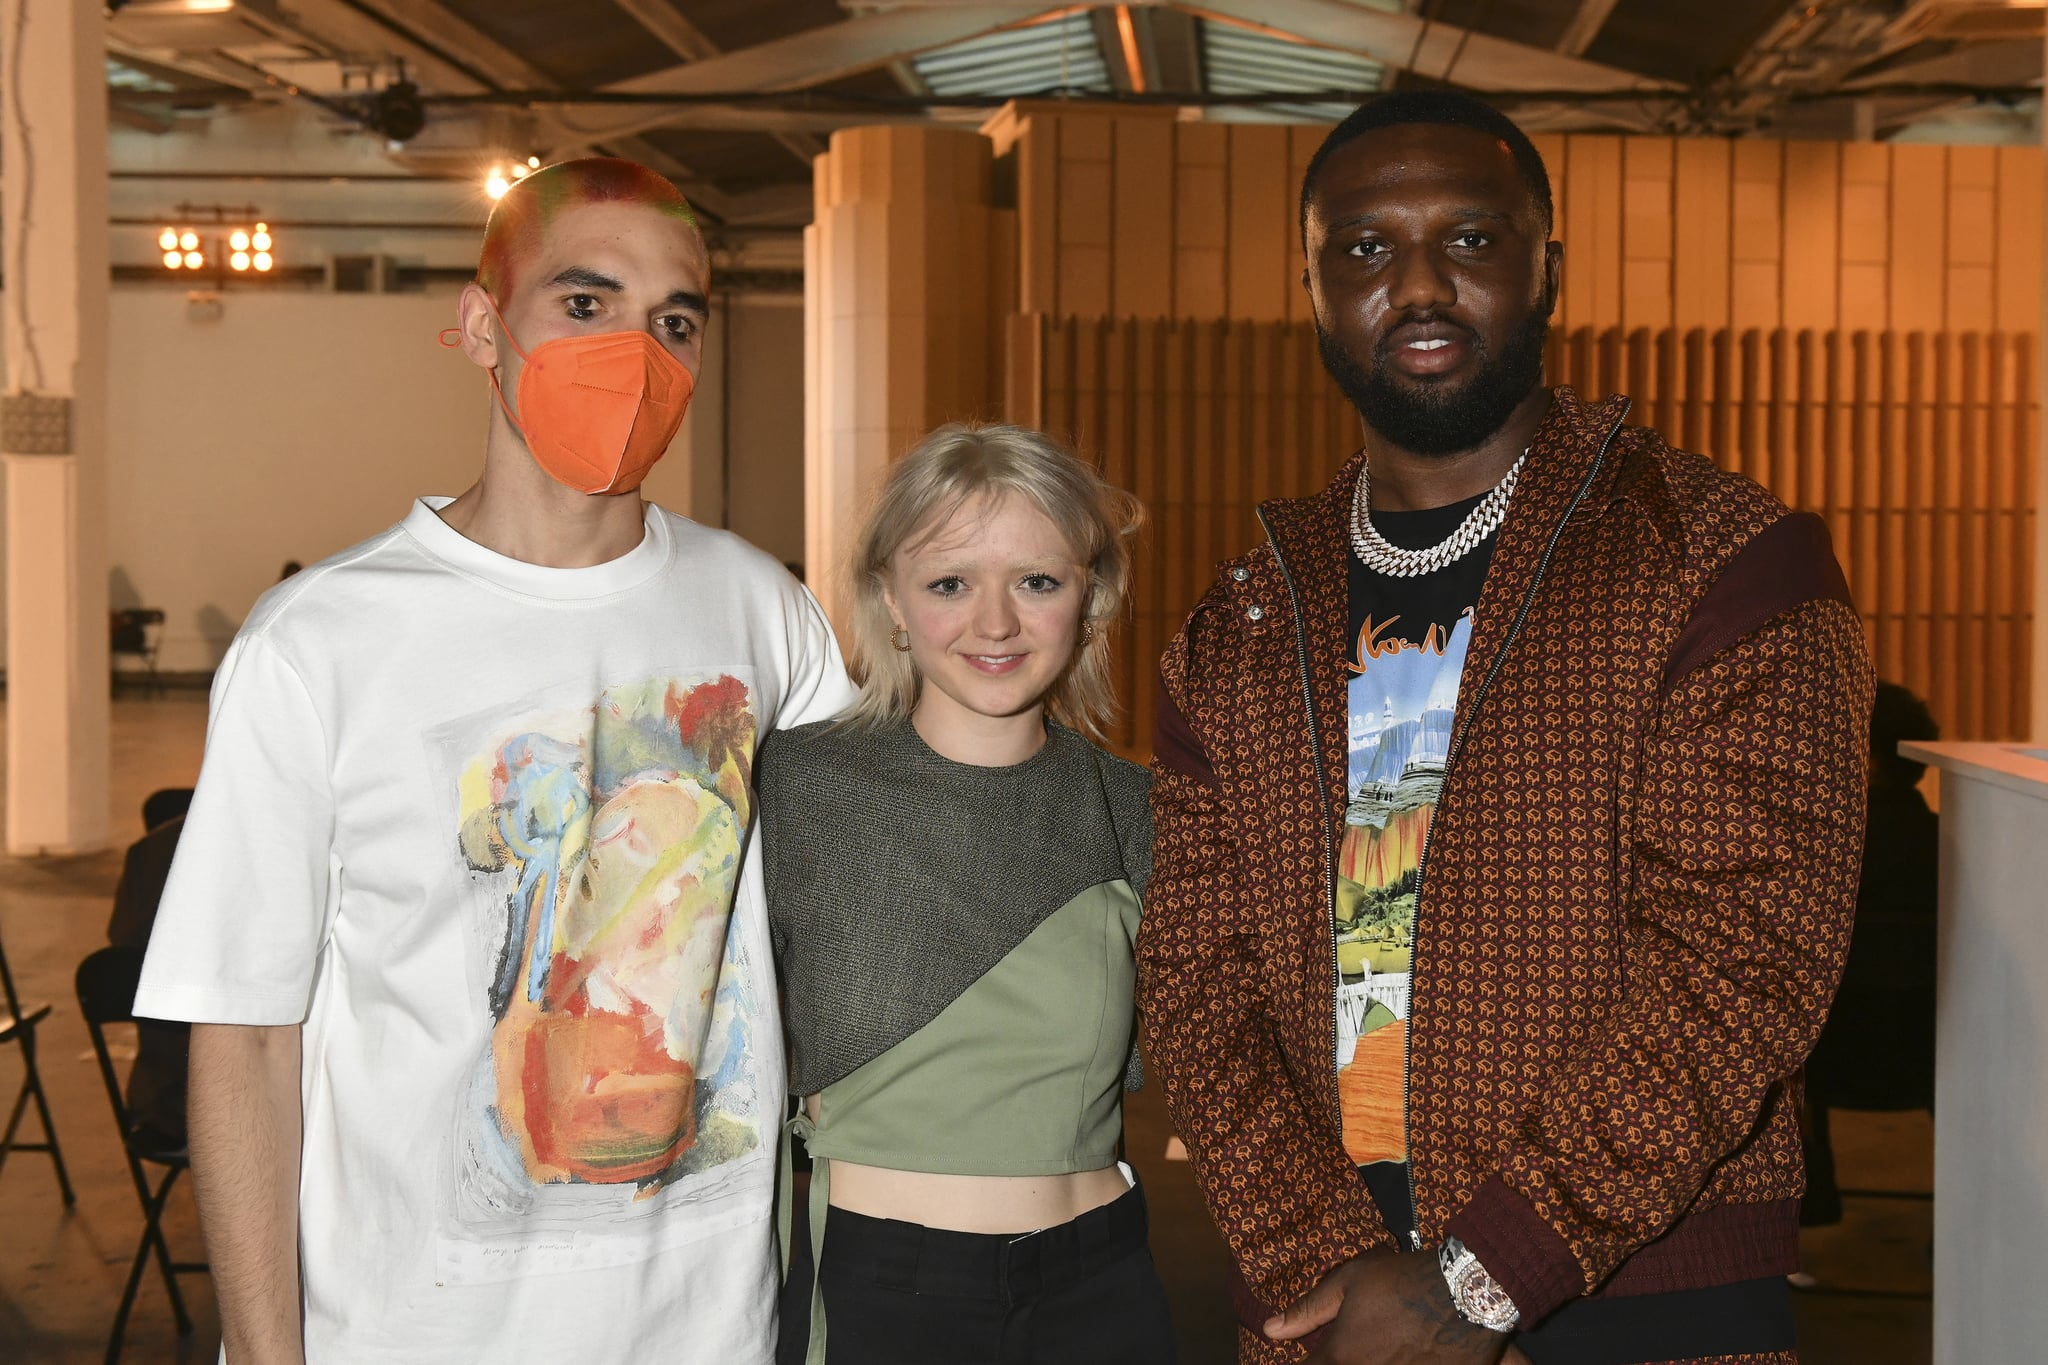 LONDON, ENGLAND - JUNE 12: (L-R) Reuben Selby, Maisie Williams and Headie One attend the Reuben Selby show during London Fashion Week June 2021 on June 12, 2021 in London, England. (Photo by David M. Benett/Dave Benett/Getty Images)